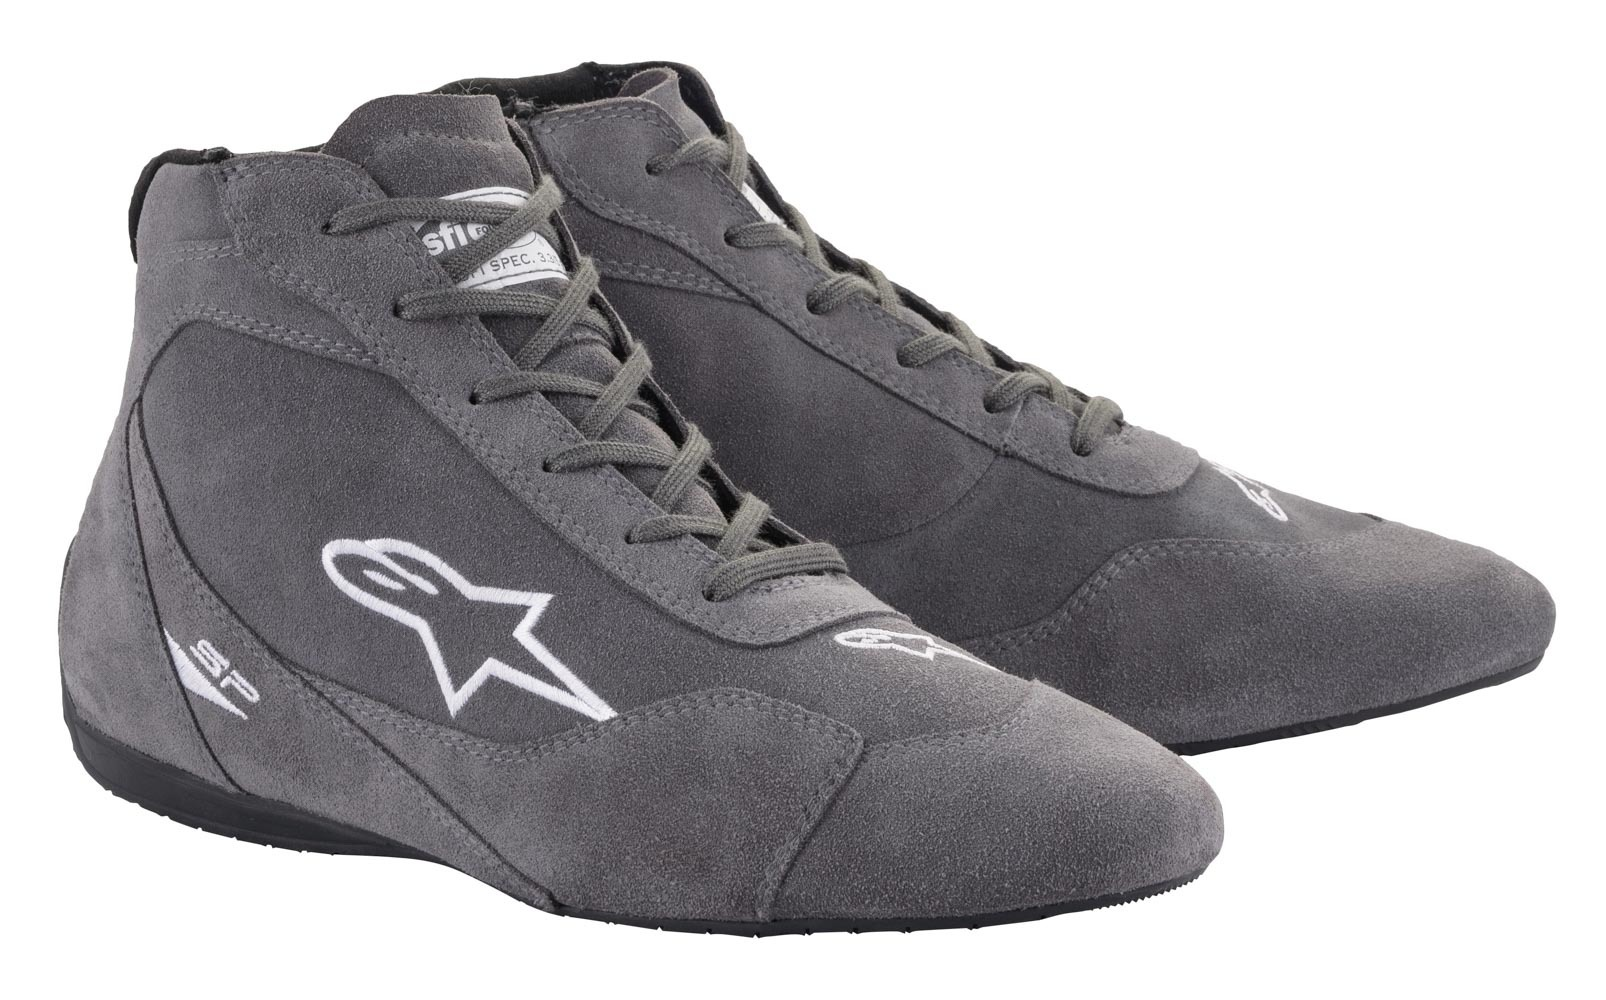 Alpinestars USA 2710621-11-9 Shoe, SP V2, Driving, Mid-Top, SFI3.3/5, Suede Outer, Nomex Inner, Dark Gray, Size 9, Pair